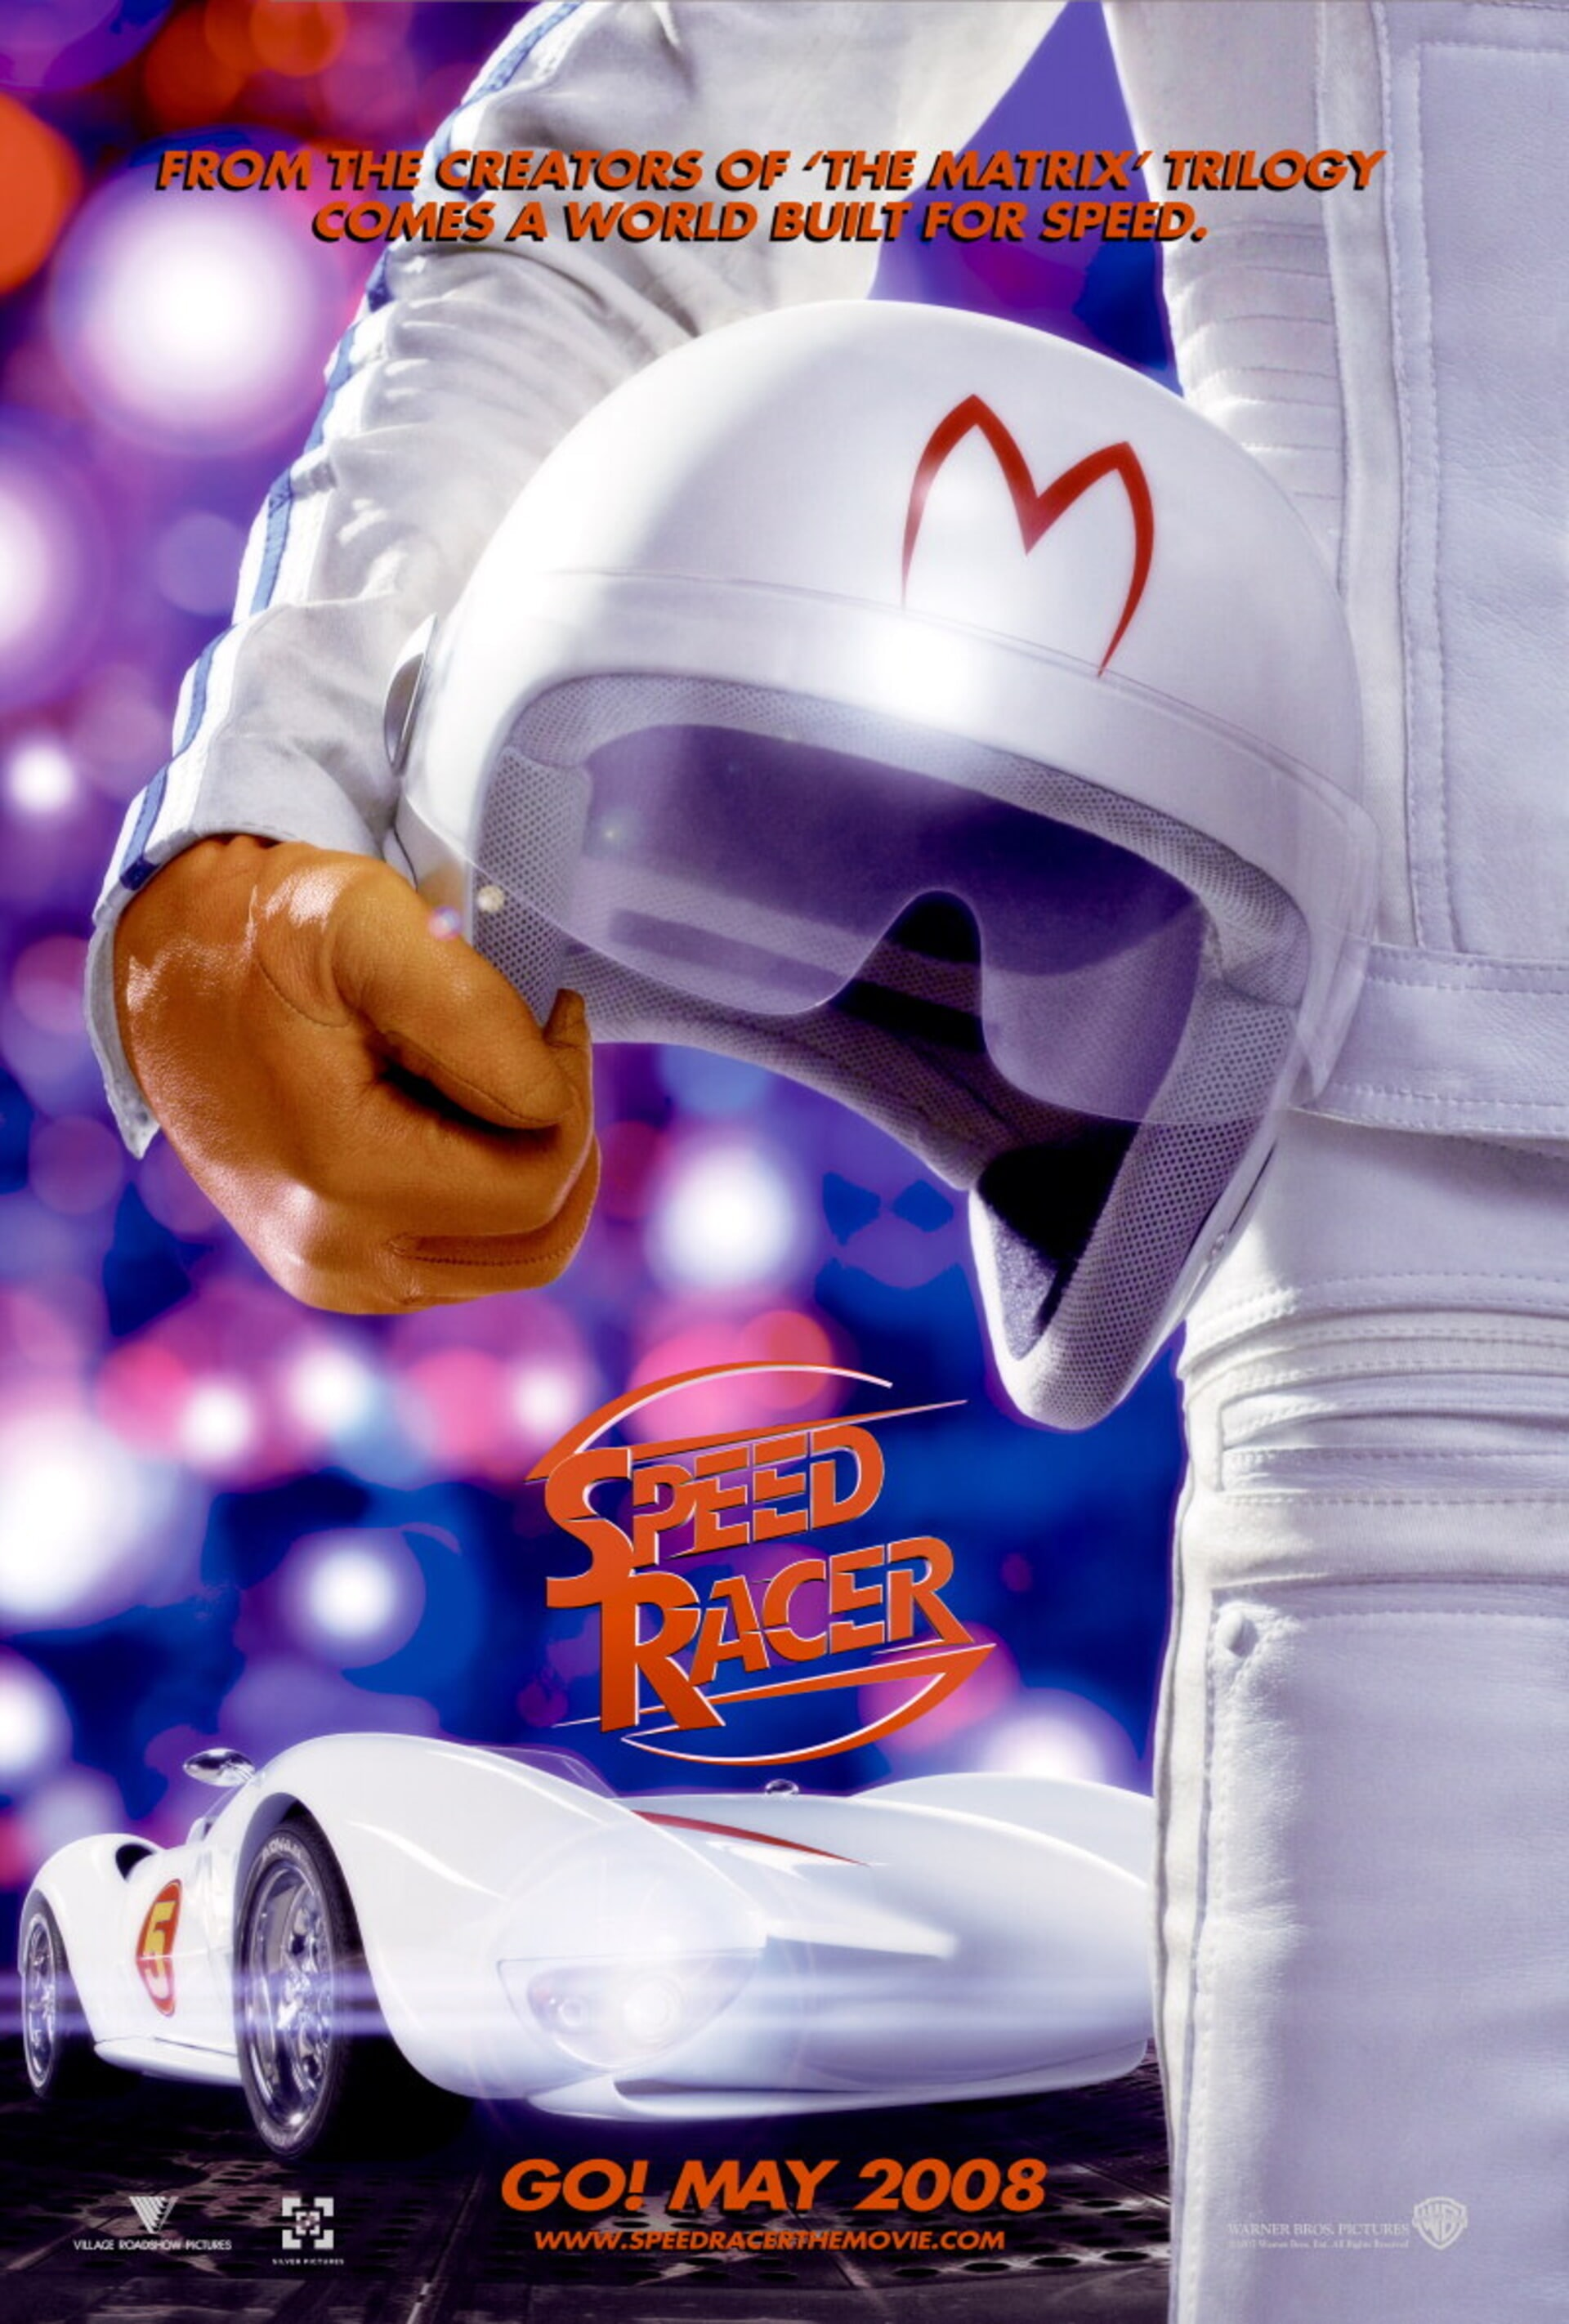 Speed Racer - Poster 1